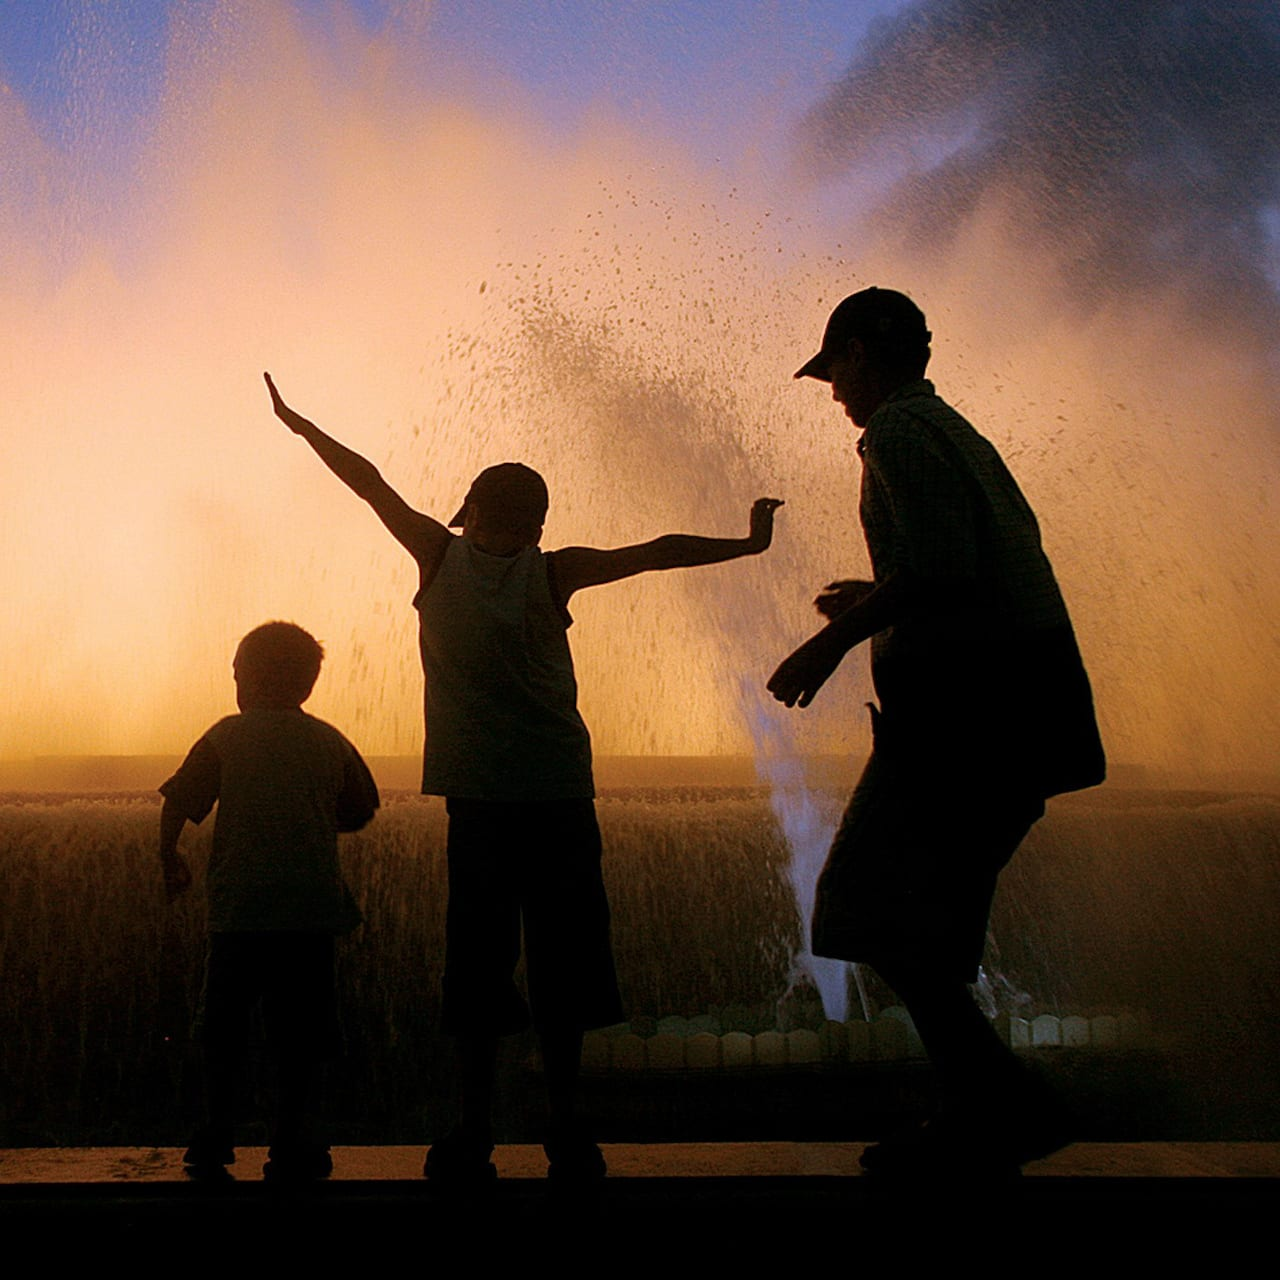 The silhouettes of 3 boys playing in front of a lighted fountain